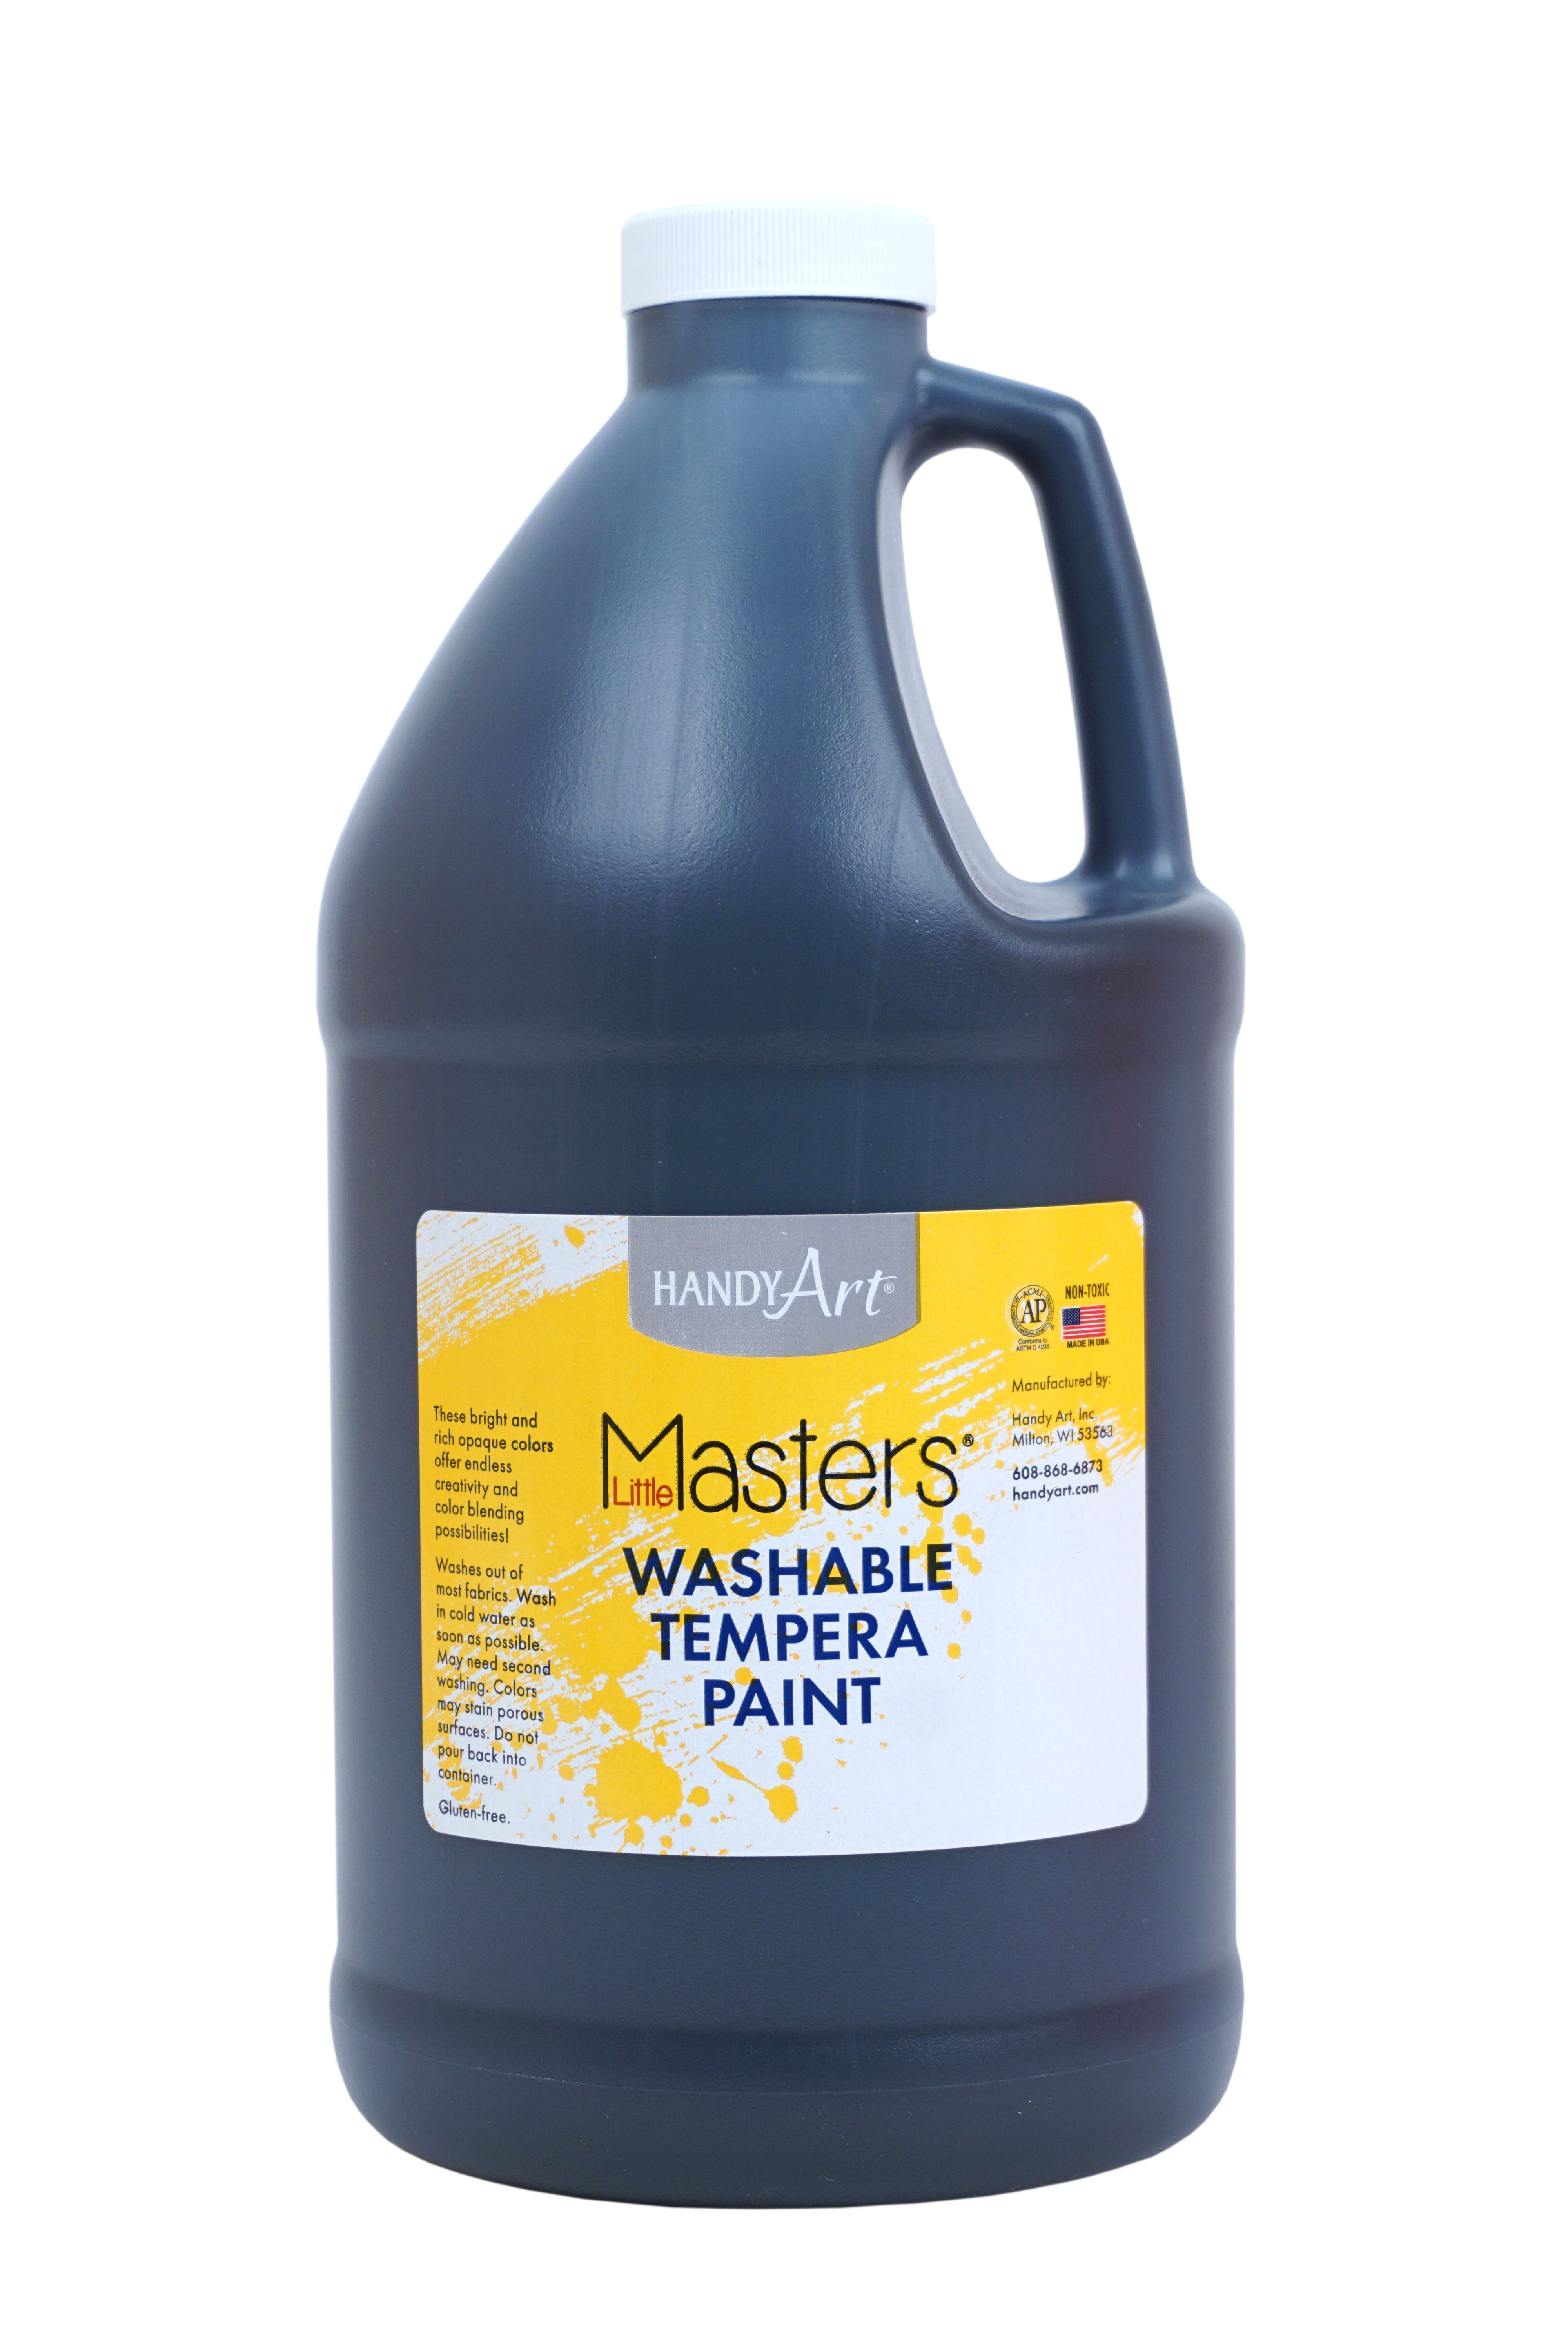 Little Masters Black Washable Tempera Paint, 1/2 Gallon